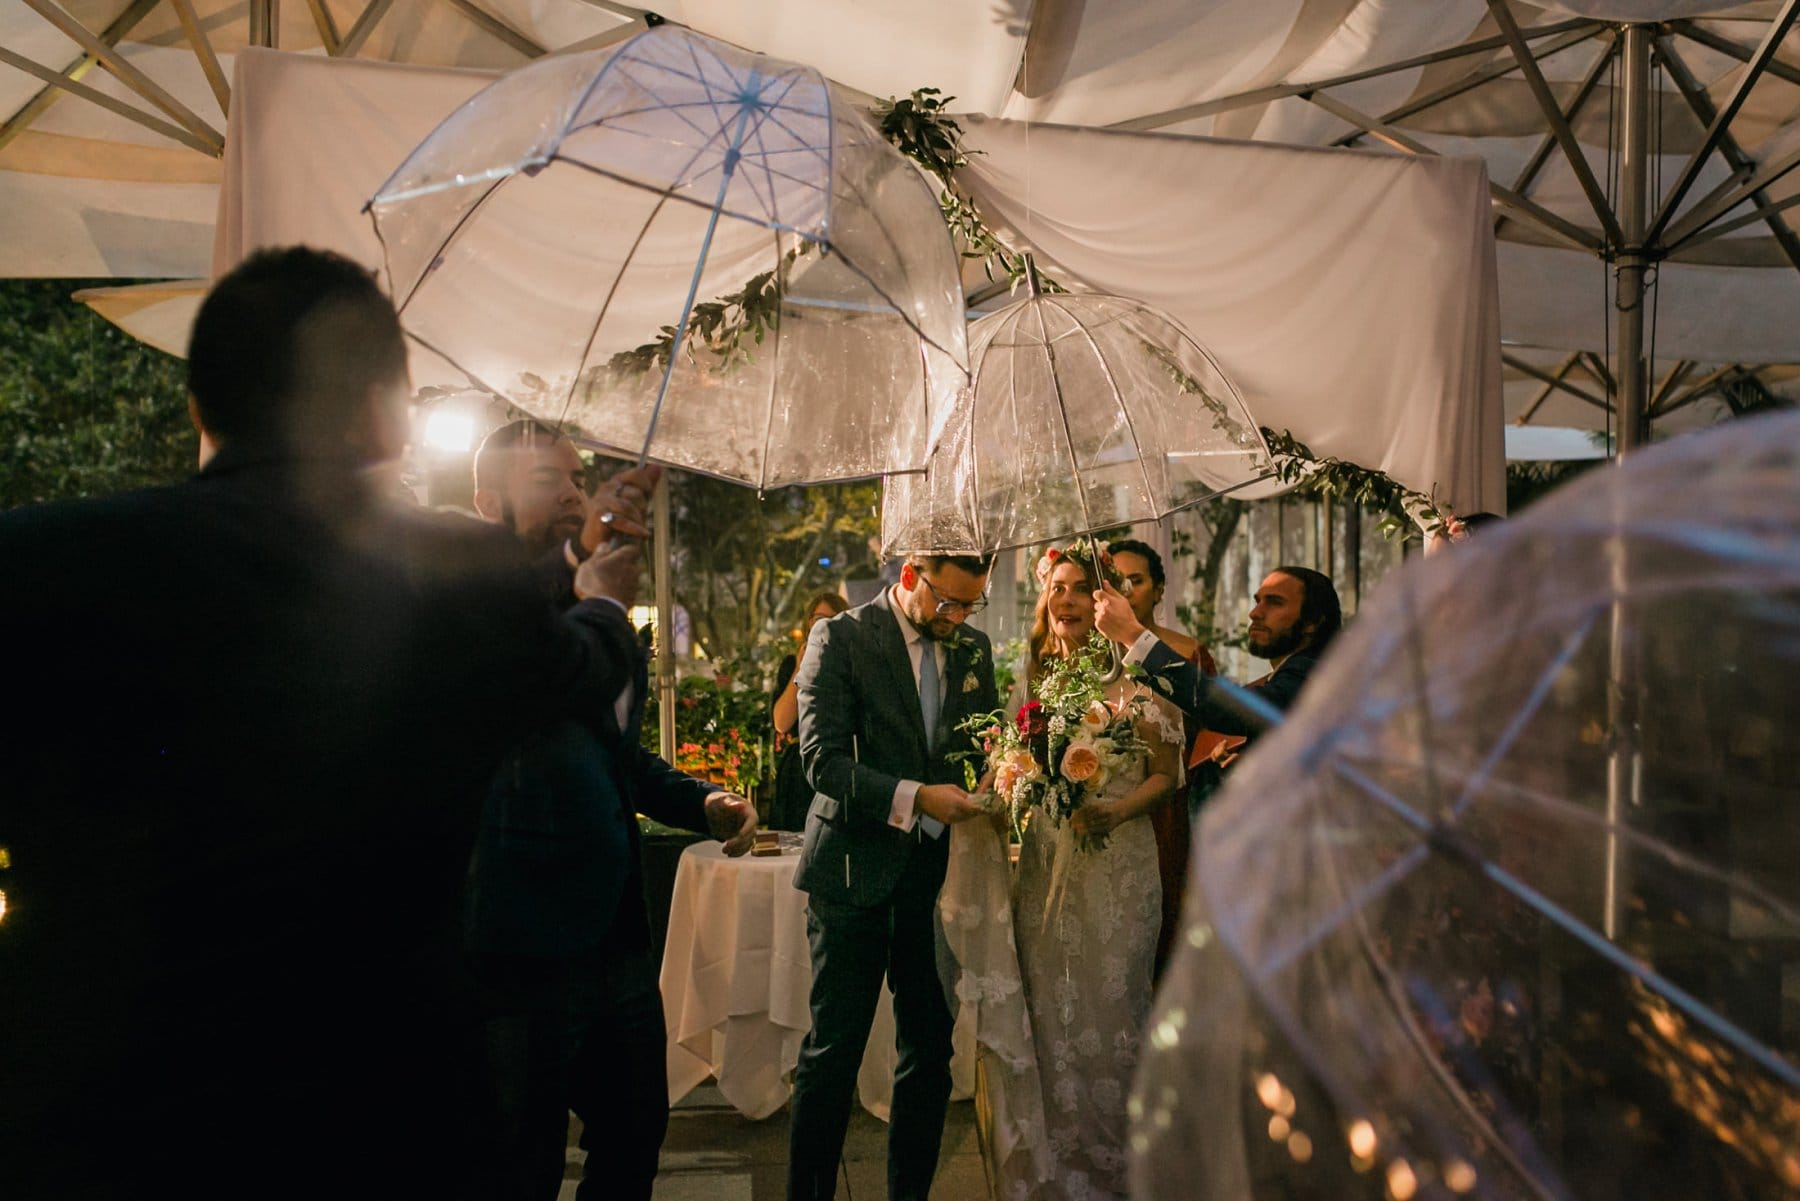 Bryant Park Grill wedding ceremony in the rain